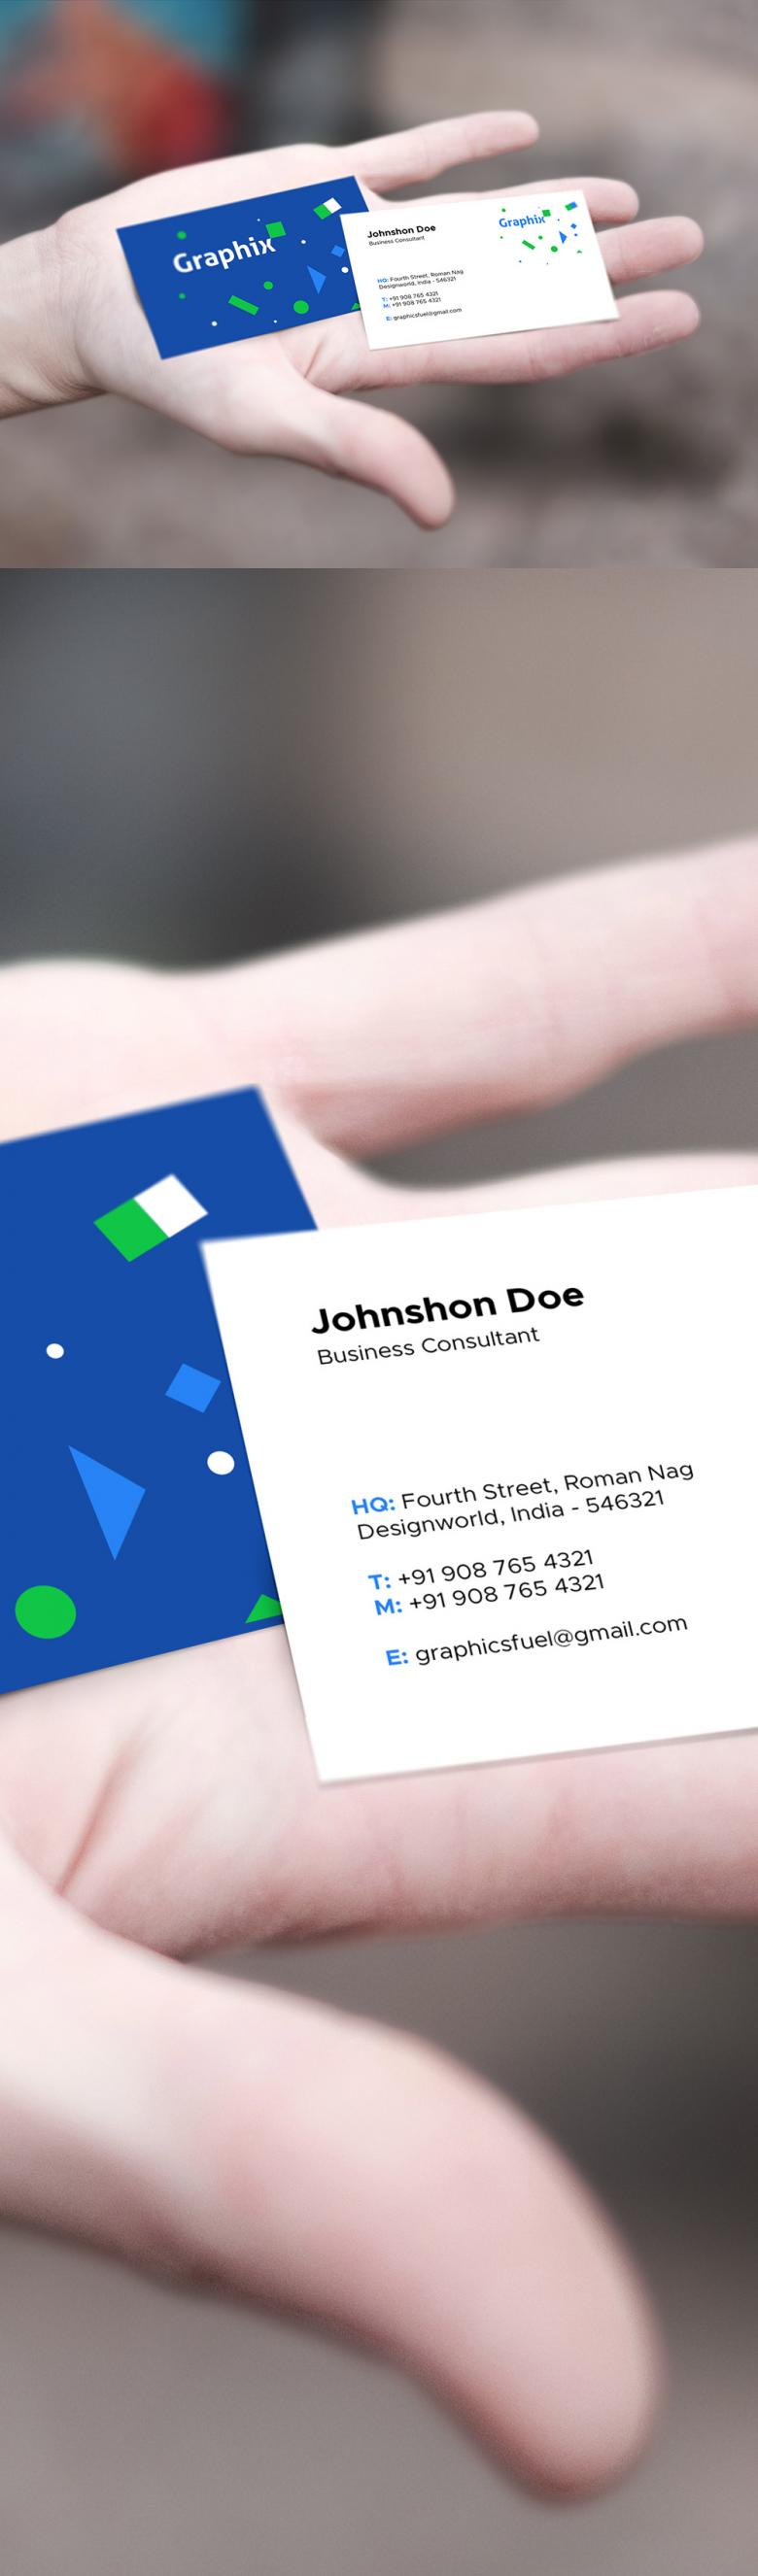 Free Business Card in Hand Mockup